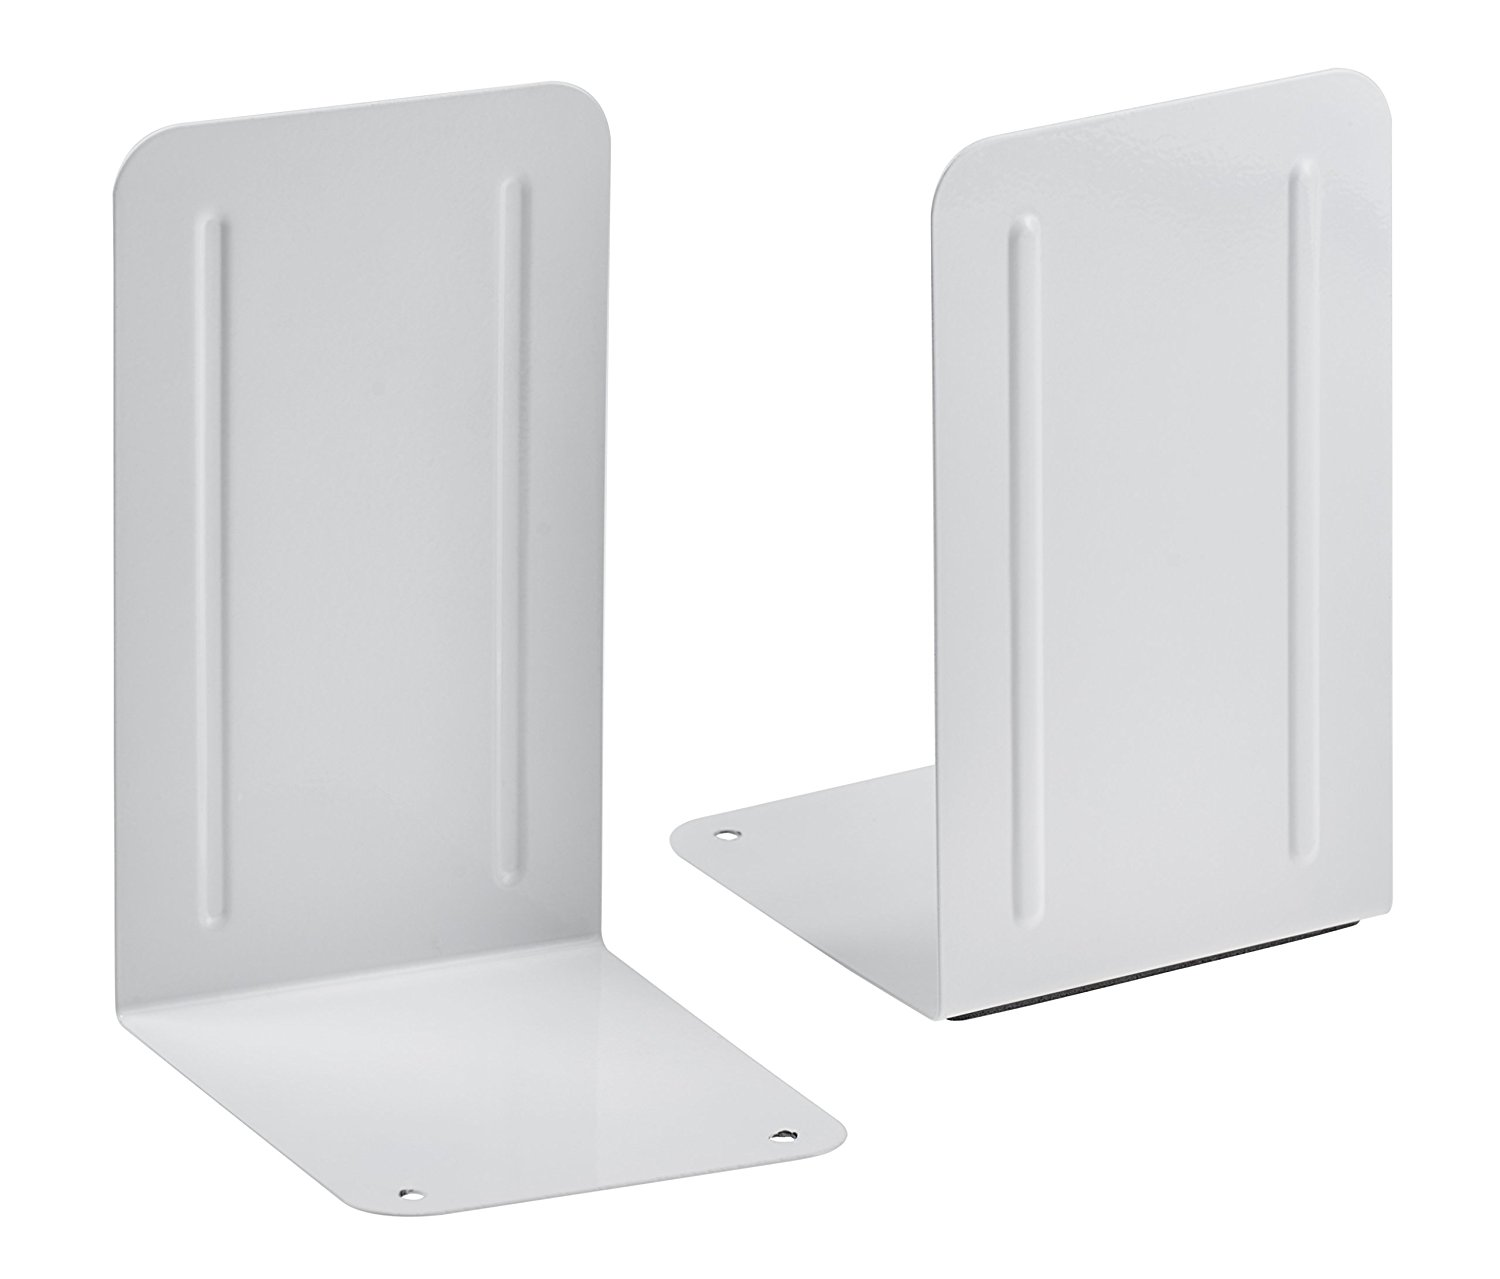 Acrimet Premium Bookend (White Color) (1 Pair Pack) by ACRIMET